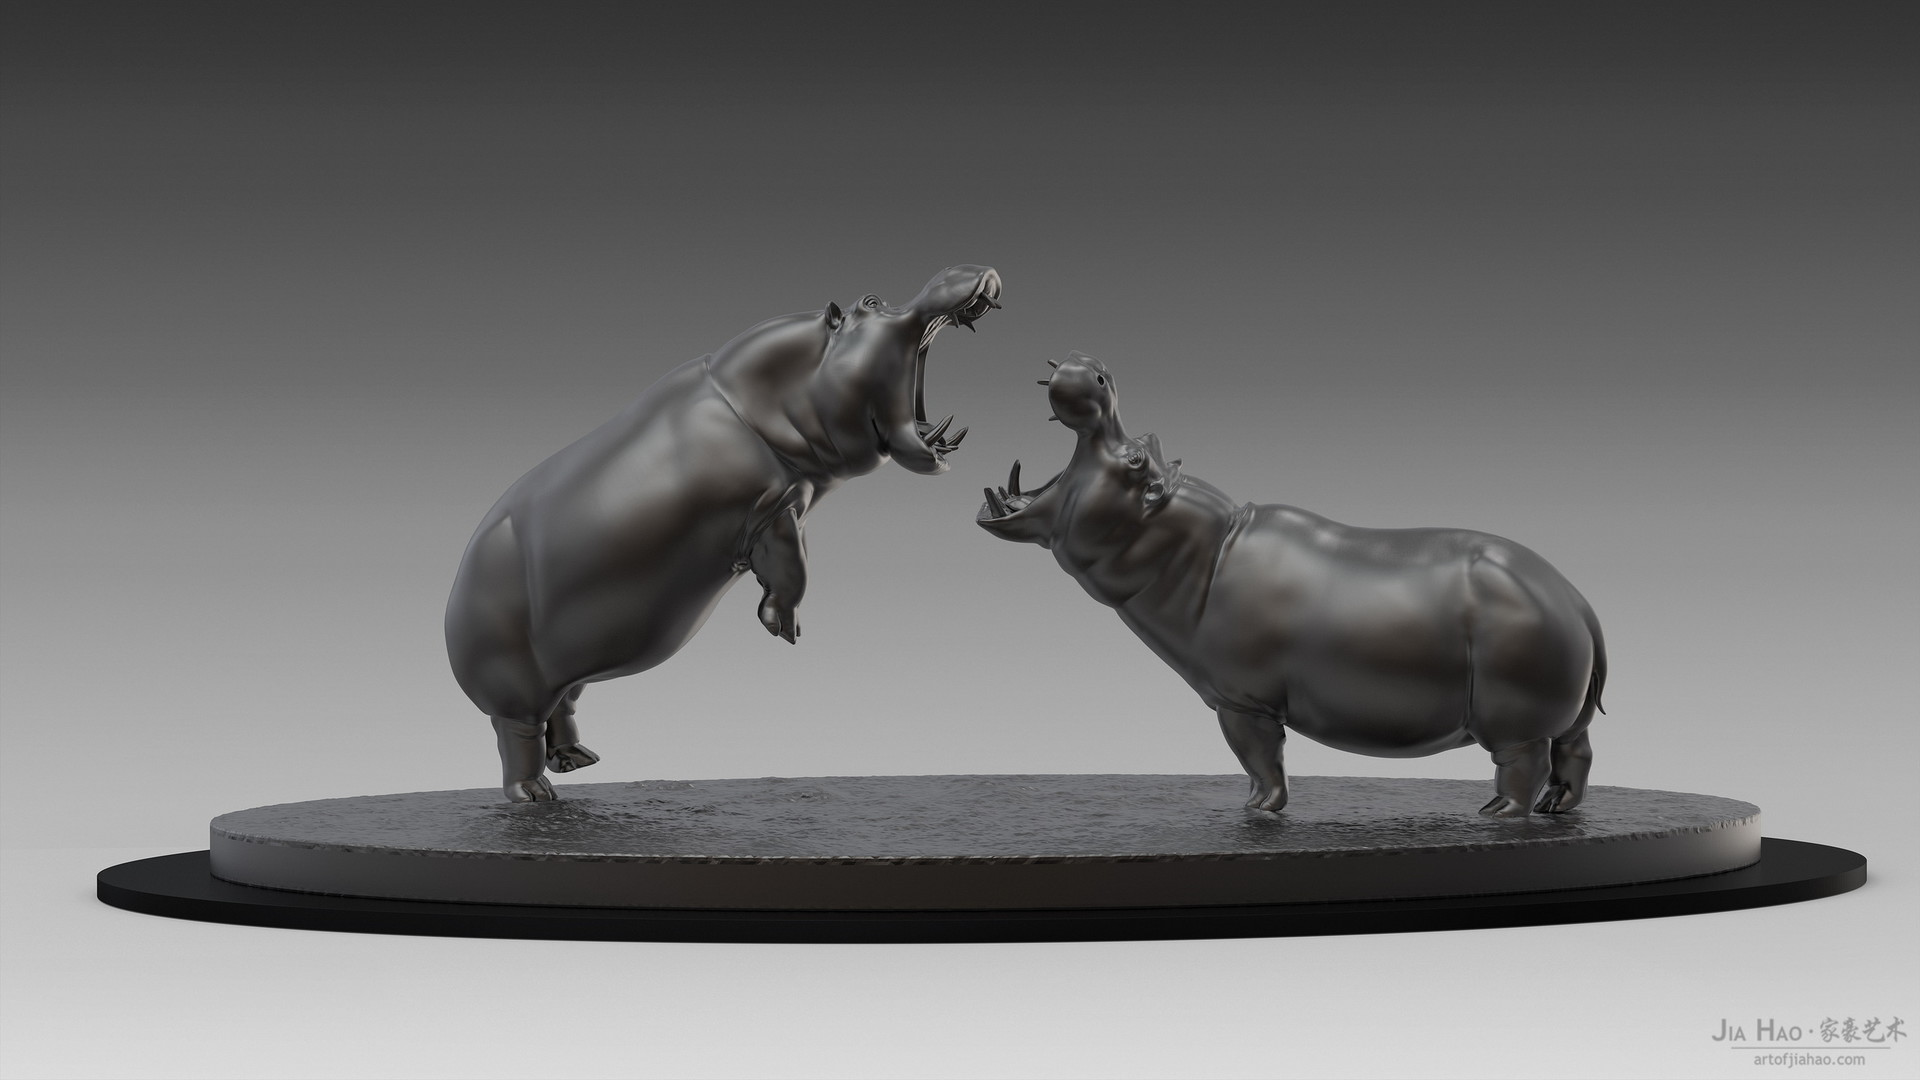 Jia hao hippo digitalsculptureb 01